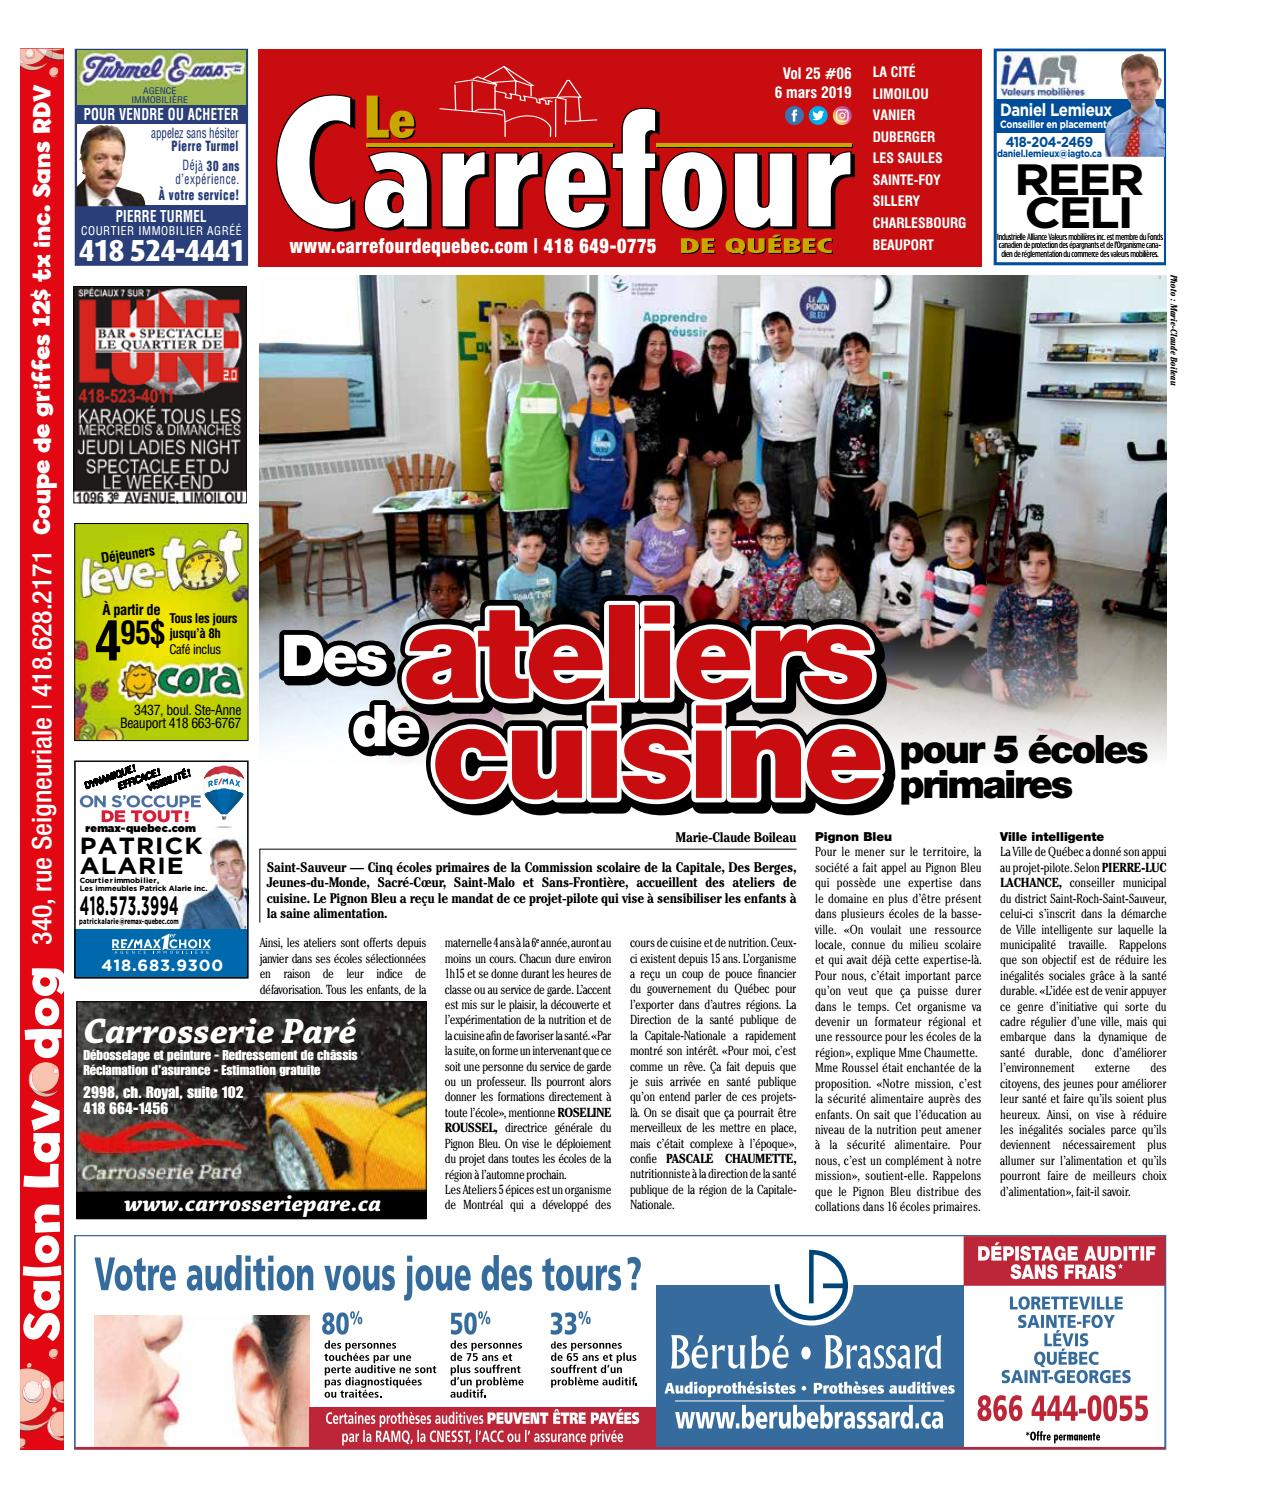 Le Carrefour du 20 mars by redaction - issuu